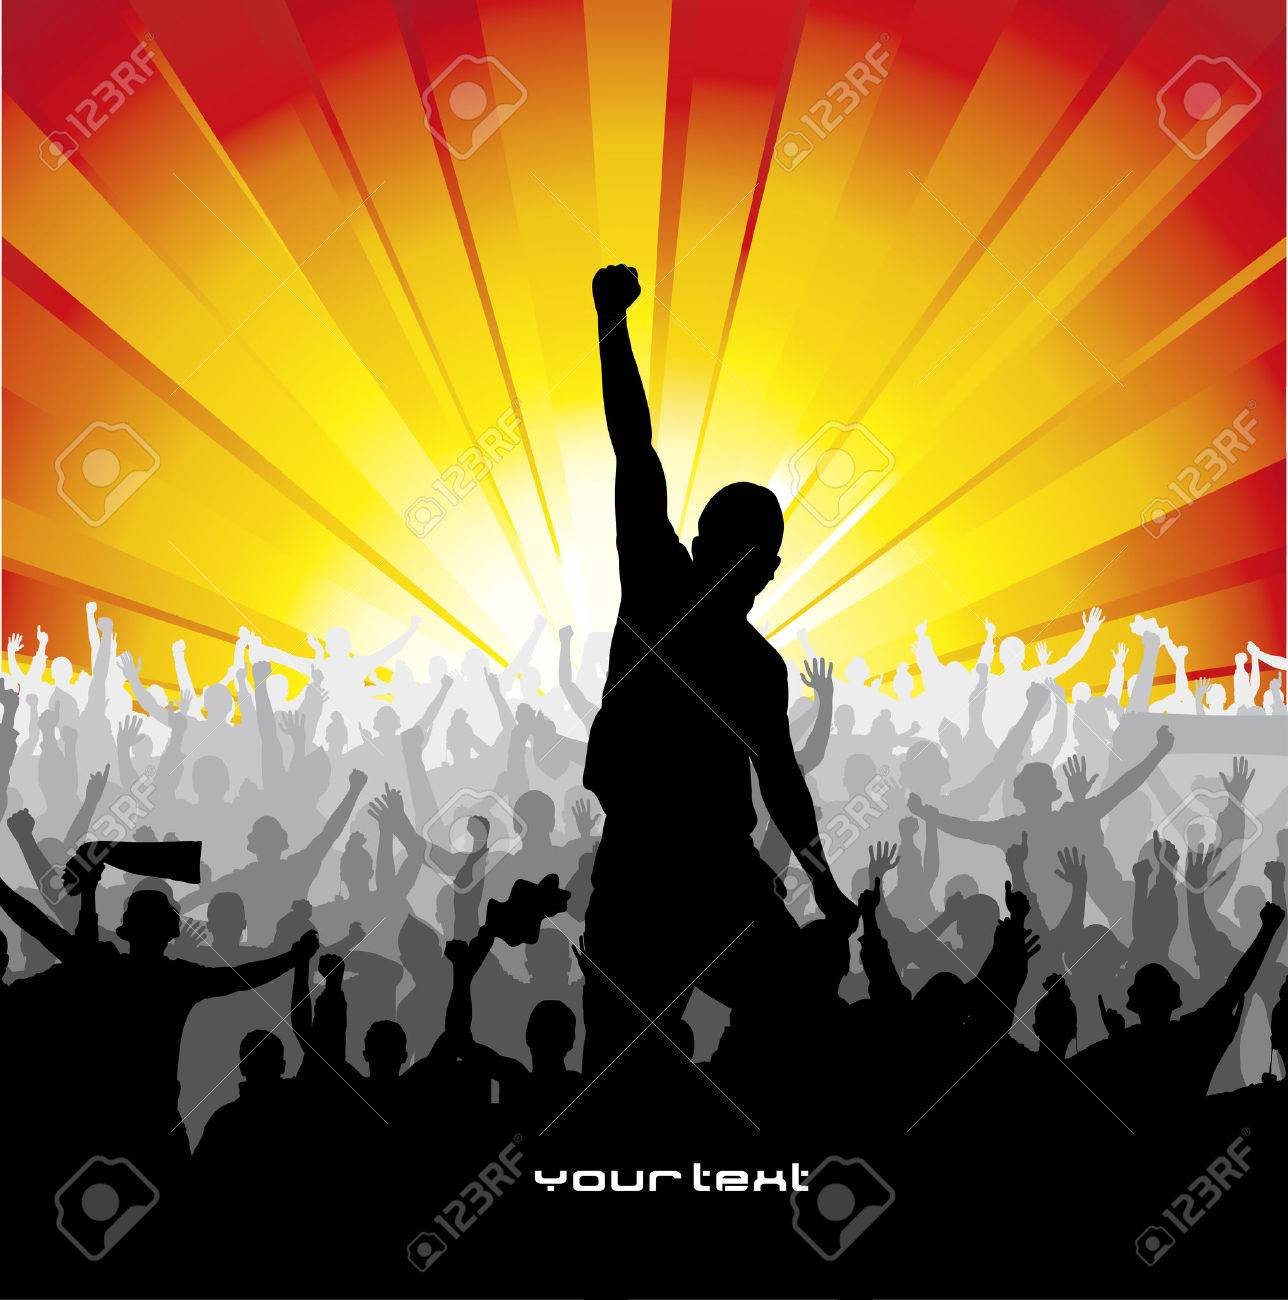 Poster for sports concerts and championships Stock Vector - 34231271